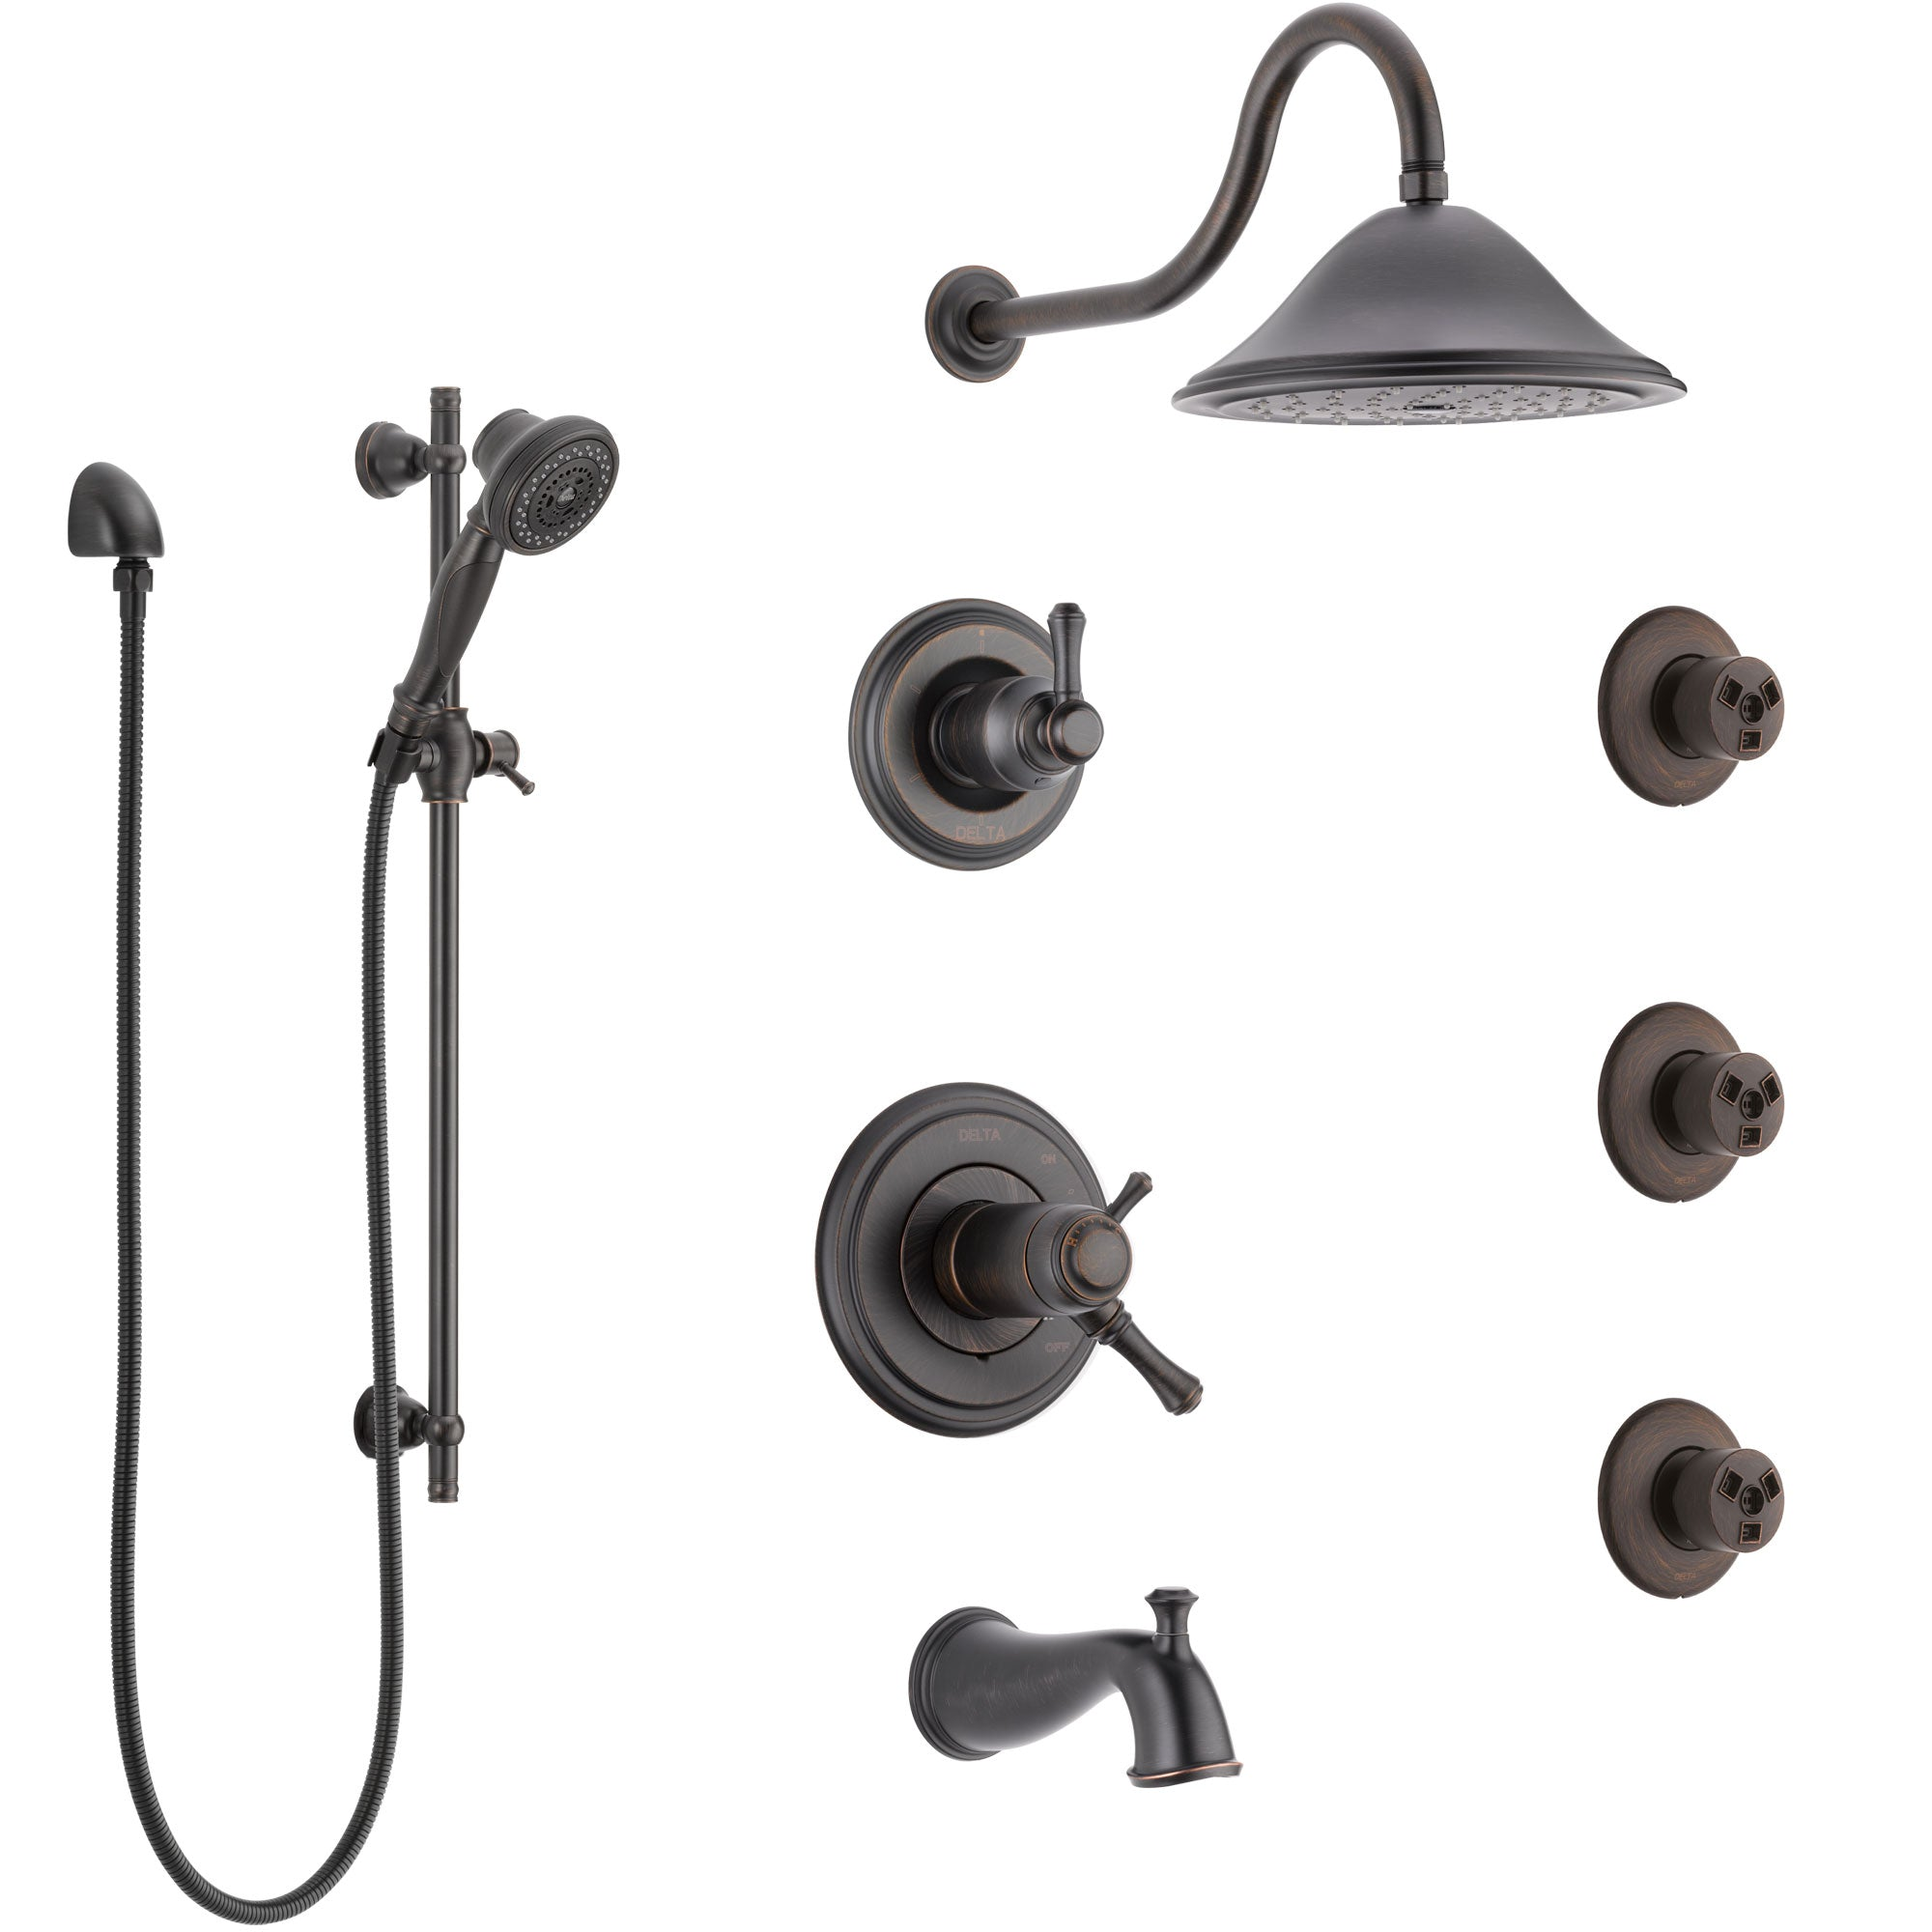 Delta Cassidy Venetian Bronze Tub and Shower System with Dual Thermostatic Control, Diverter, Showerhead, 3 Body Sprays, and Hand Shower SS17T4971RB3